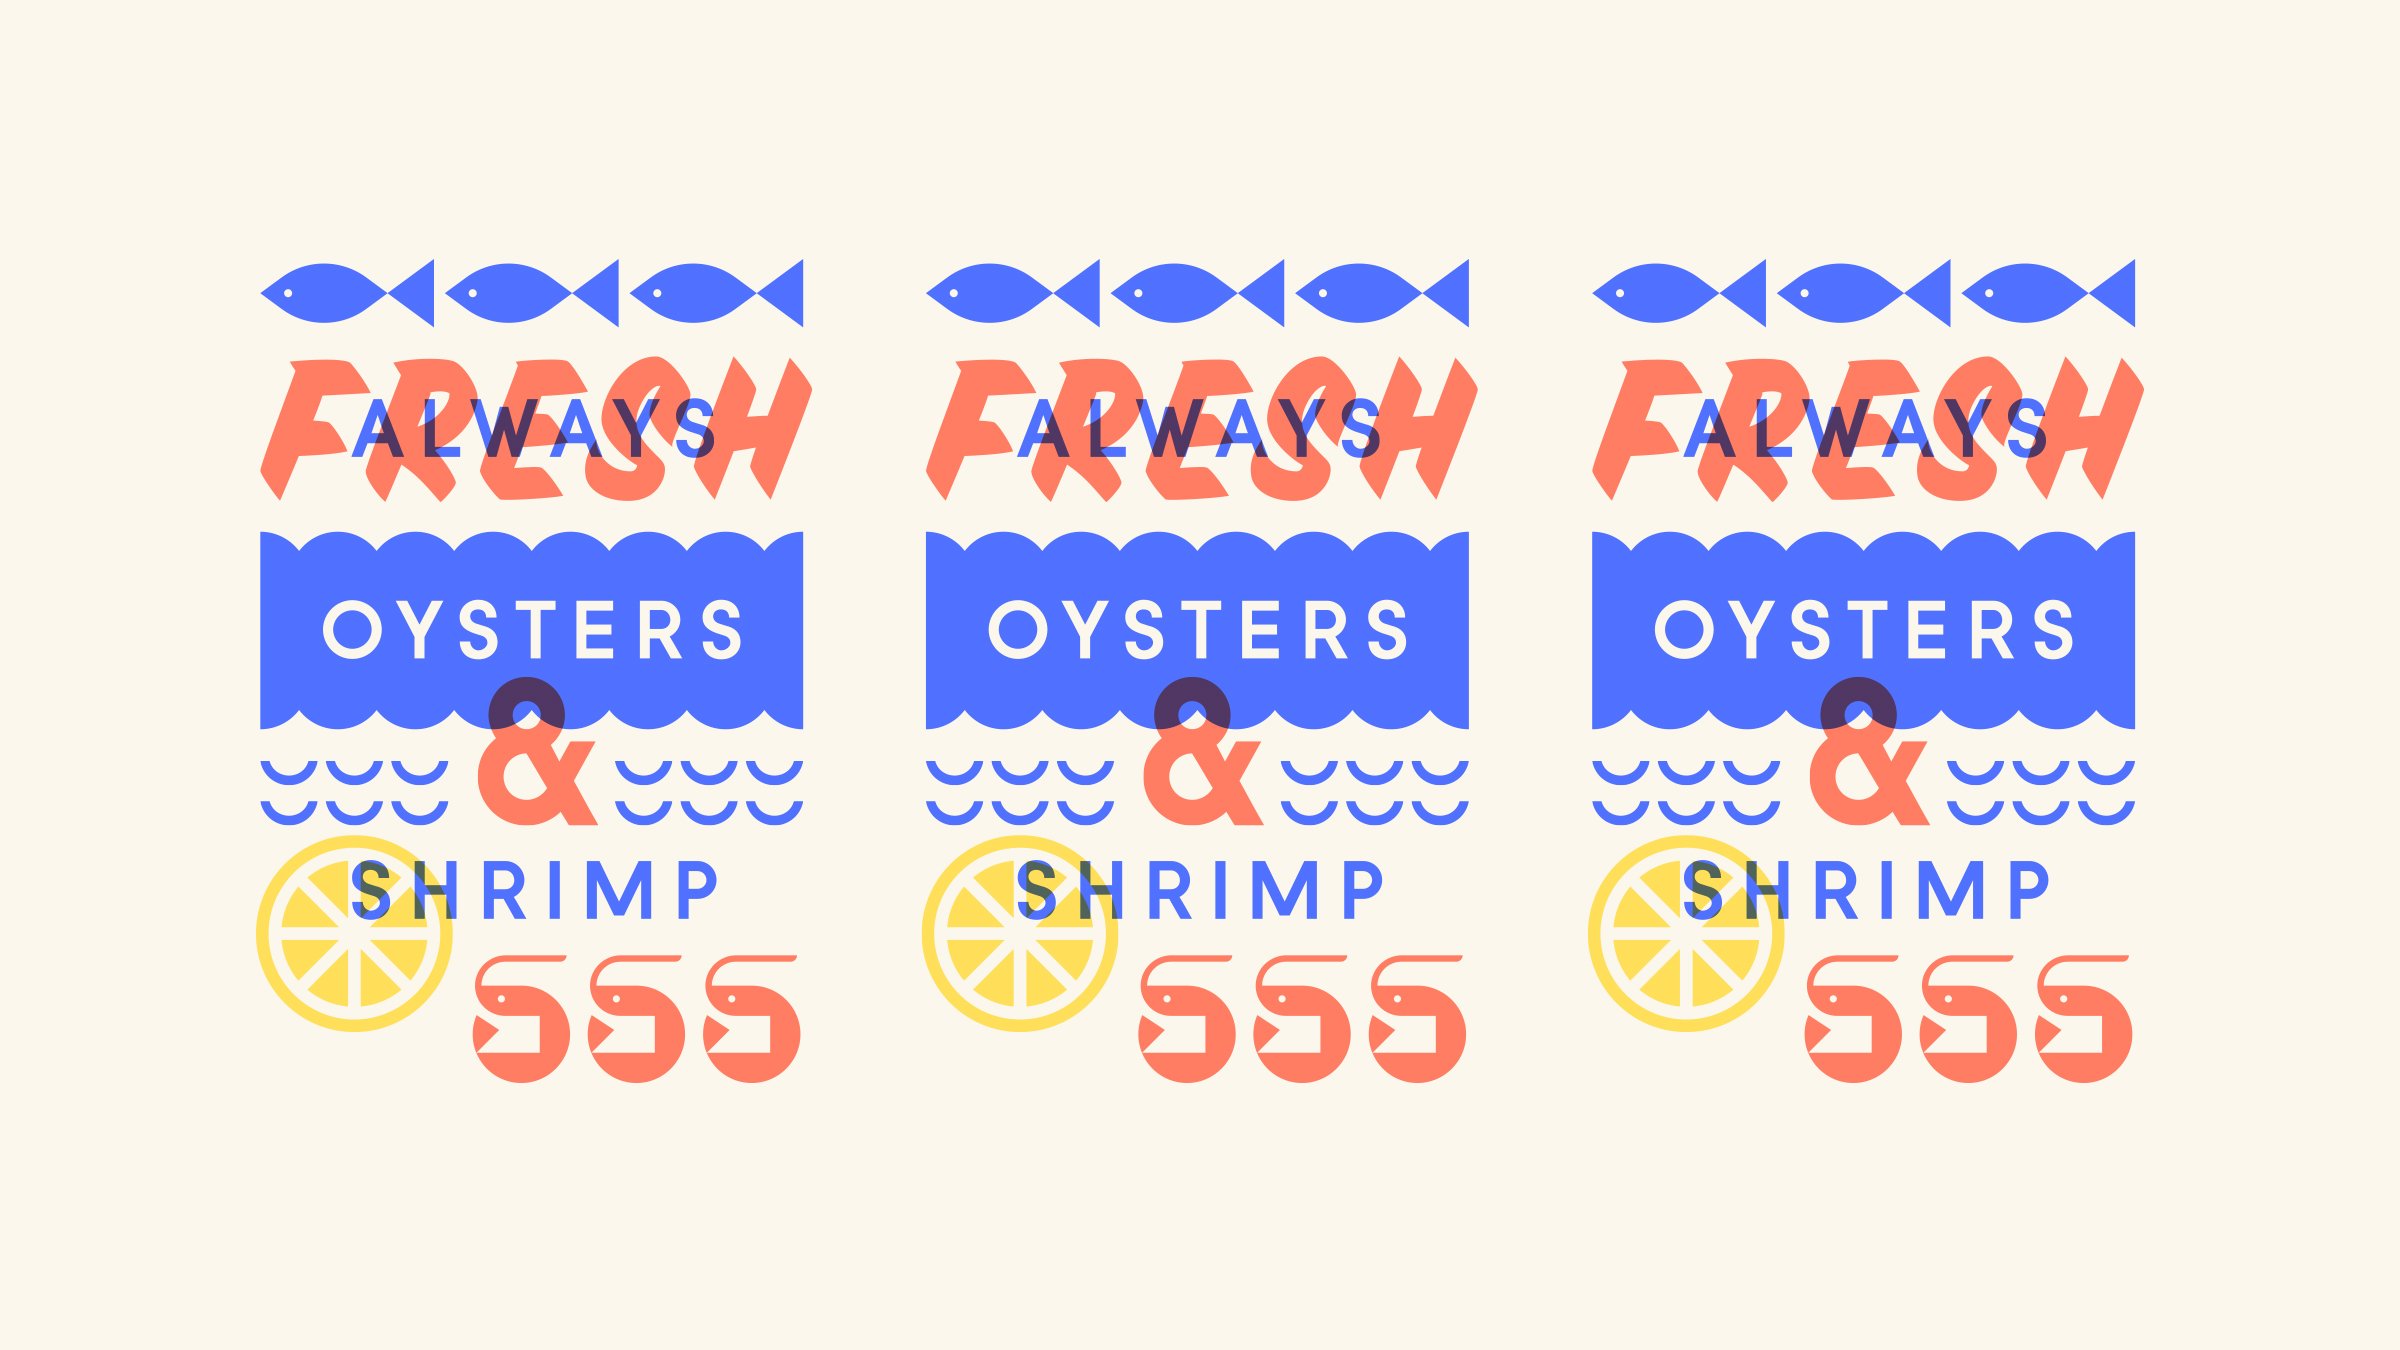 Ella & Ollie's Fresh Oysters and Shrimp Illustration